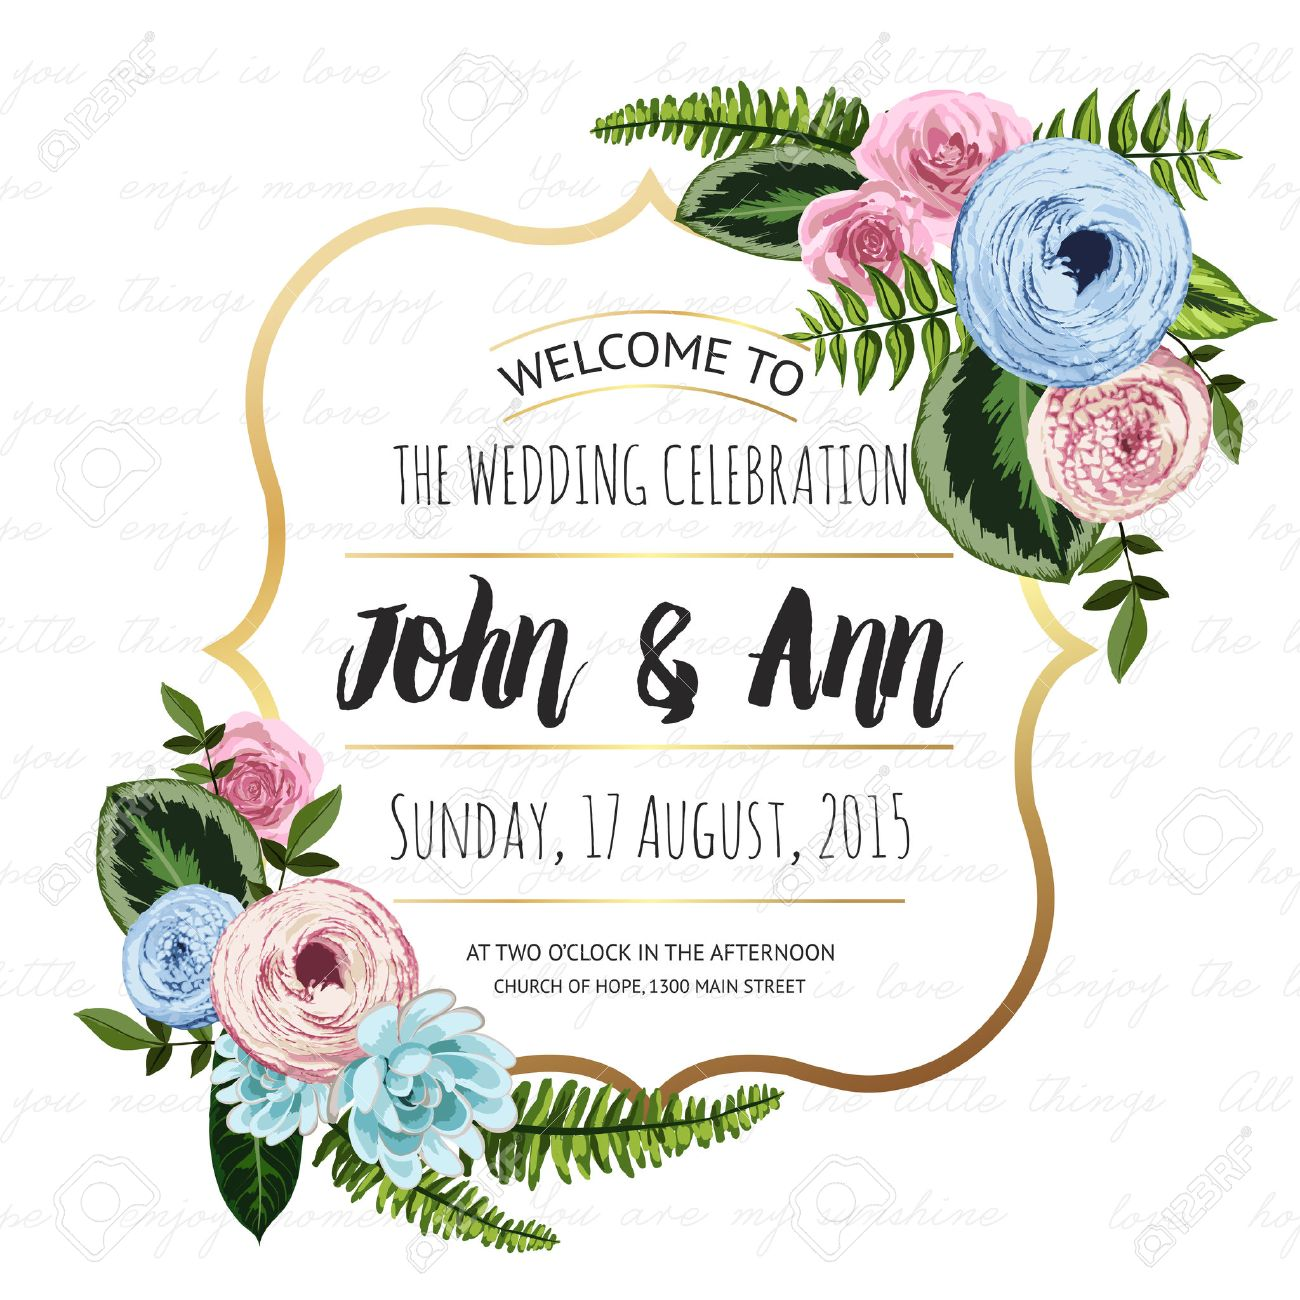 Wedding Invitation Card With Painted Flowers And Plants On Seamless ...